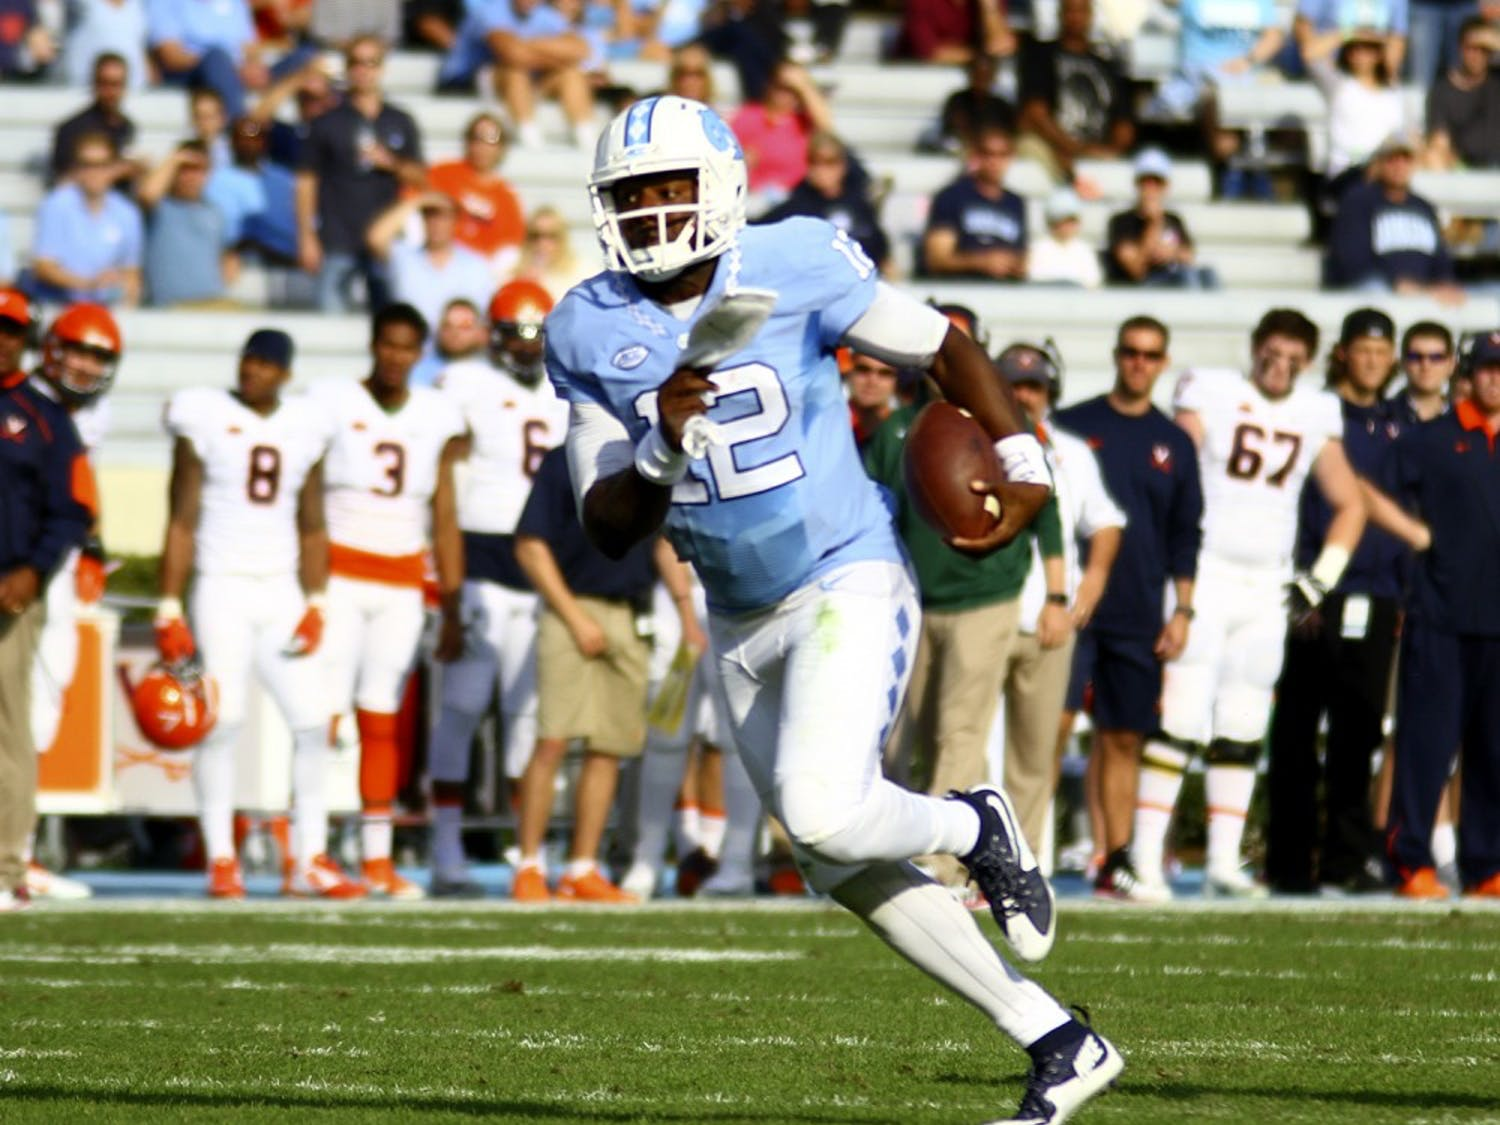 MarquiseWilliams, 12, runs the ball during the UNC-UVa game Saturday. Williams netted 71 rushing yards during the game.